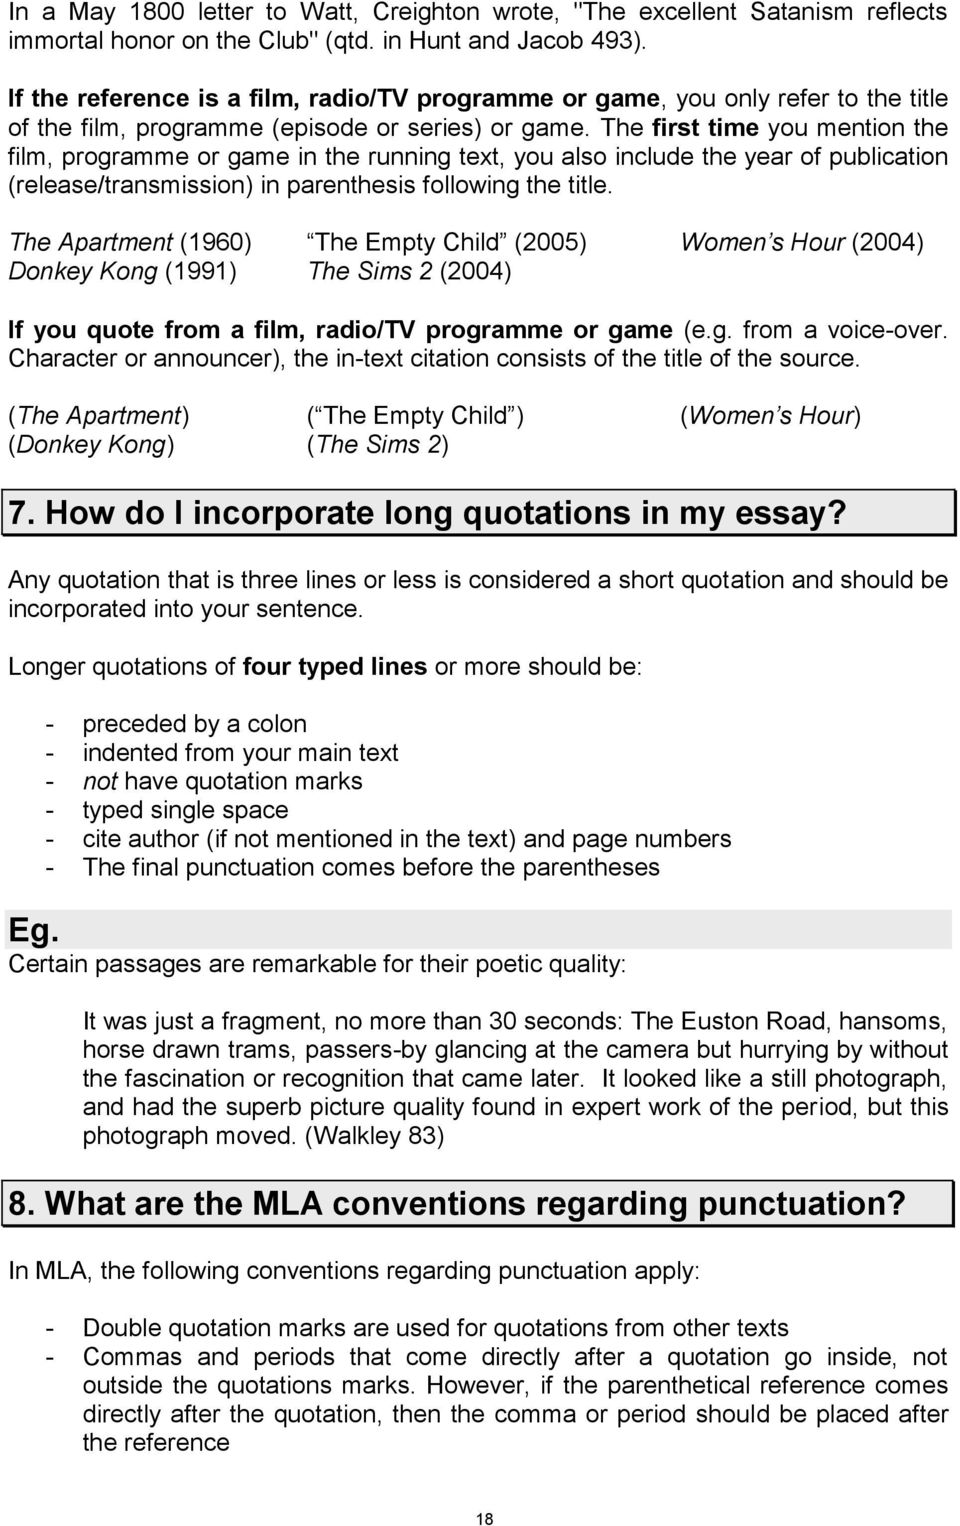 mla referencing guide In microsoft word, you can automatically generate a bibliography (or other similar  document requiring citations) of the sources you used to write your paper.